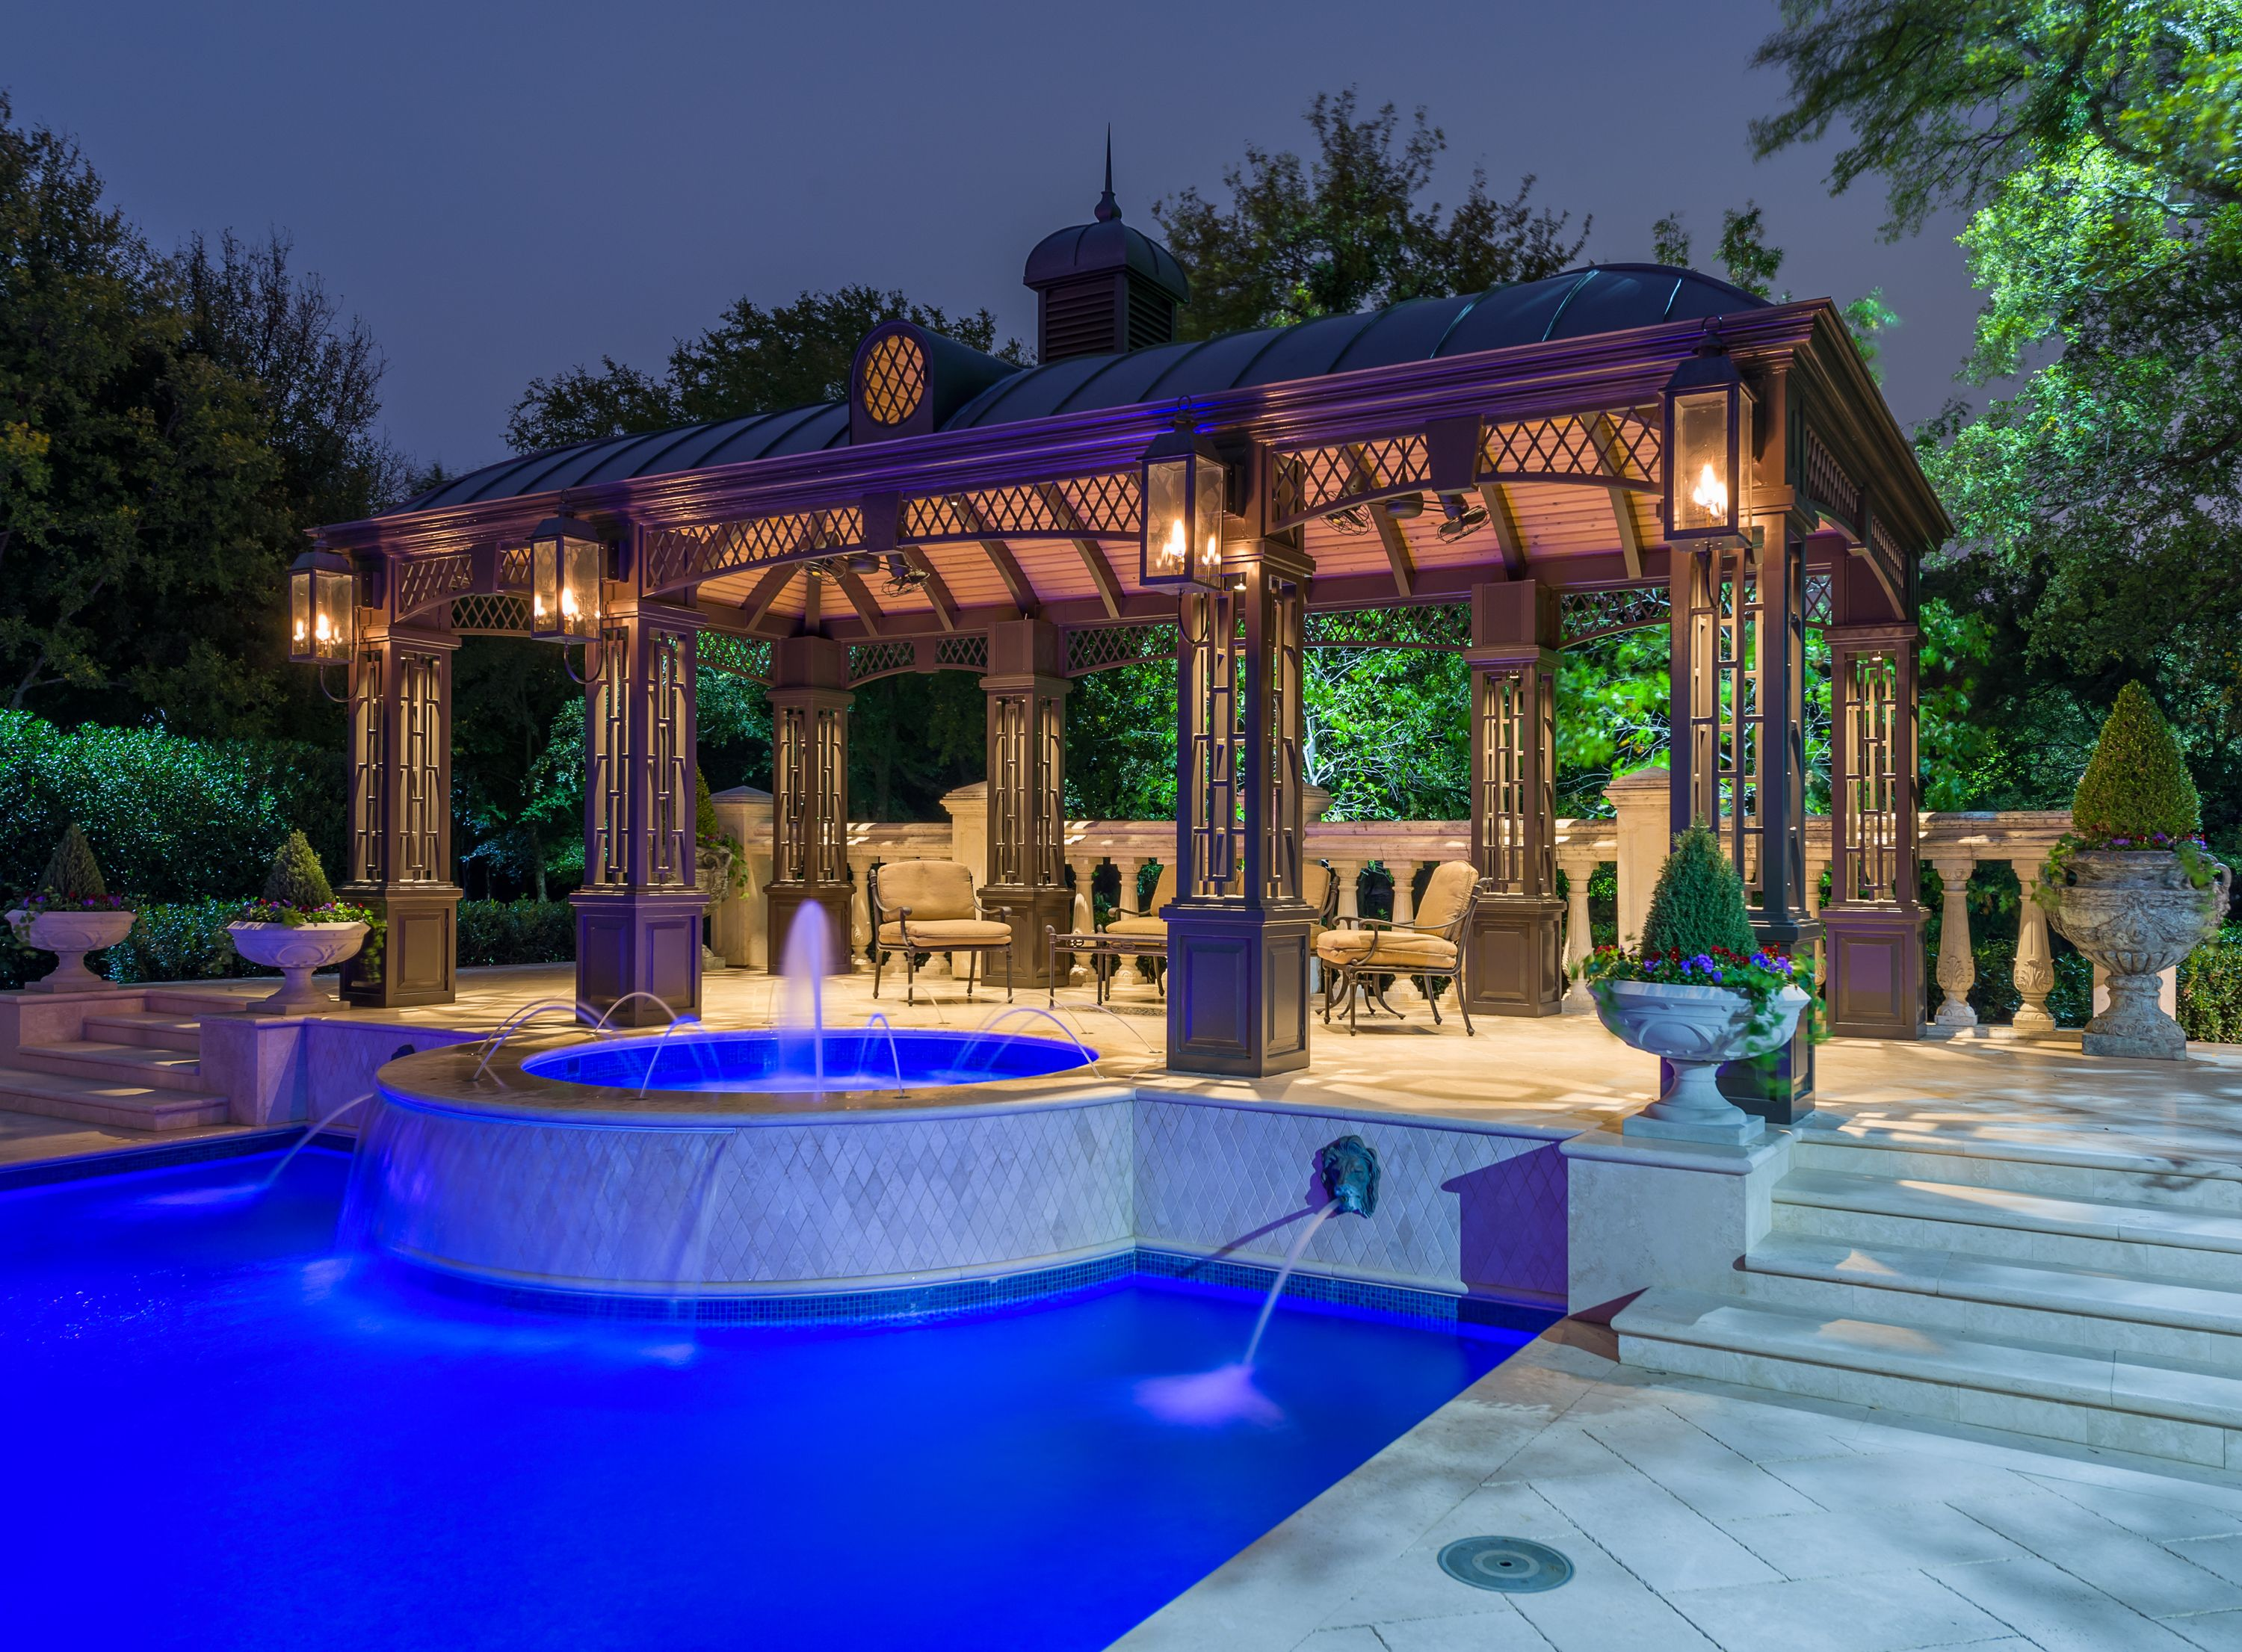 Custom Cabana And Luxurious Outdoor Spa After A Day In